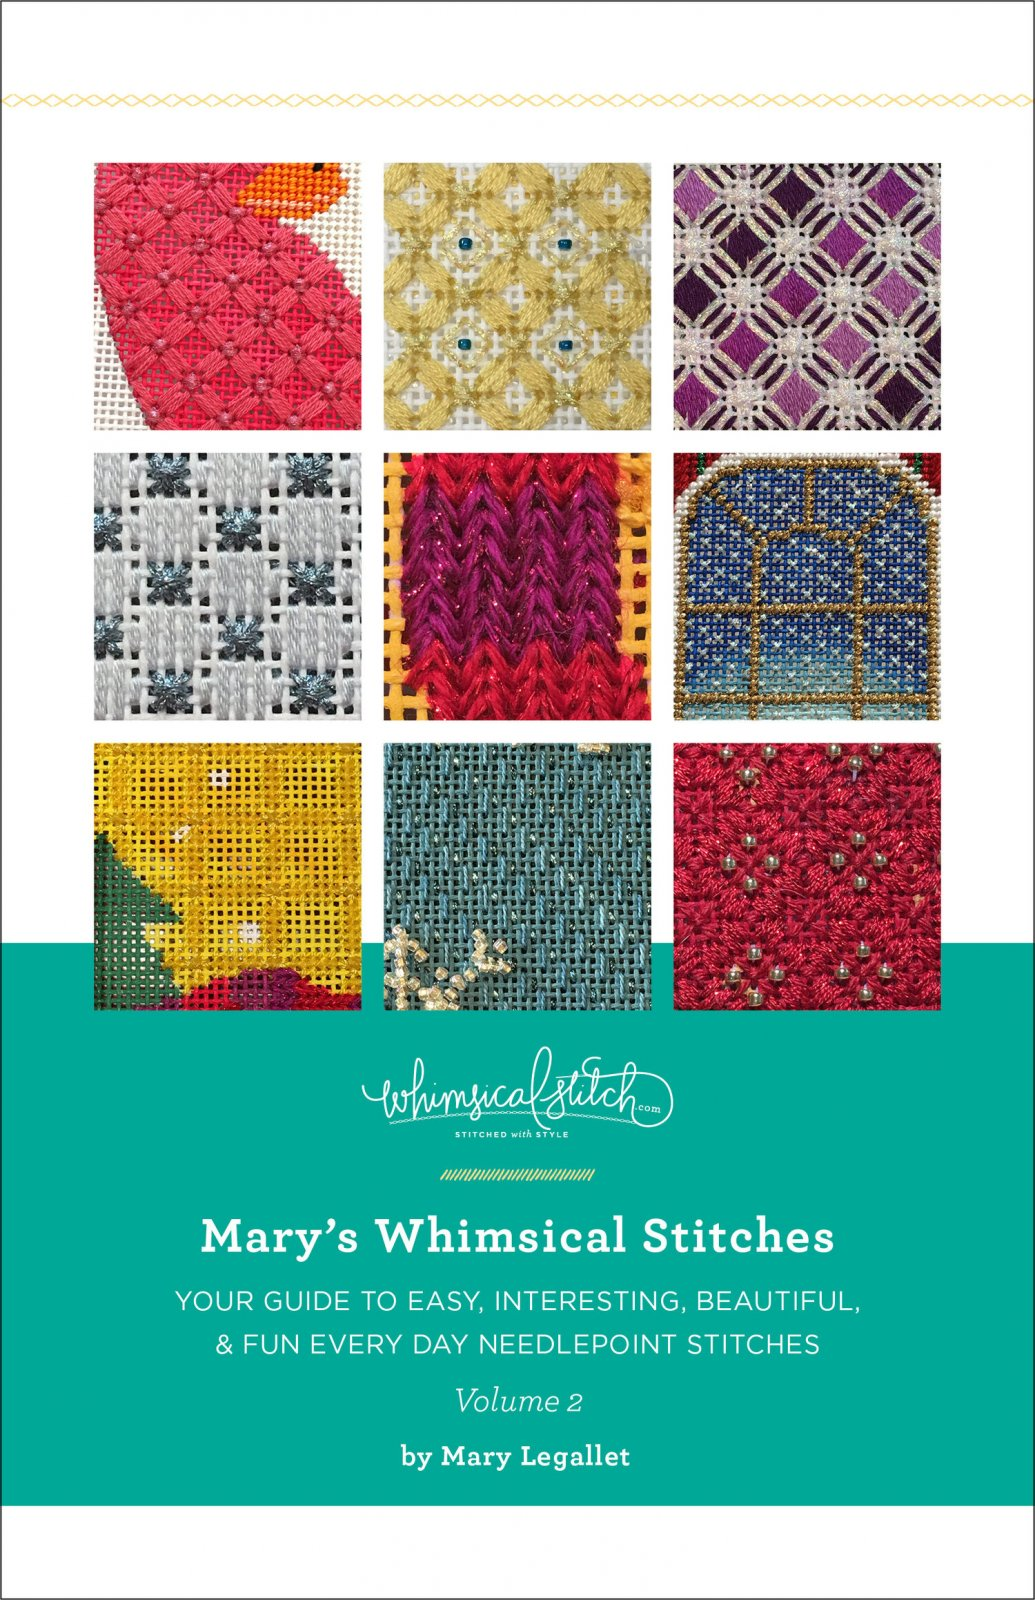 PRE-ORDER - Mary's Whimsical Stitches  Volume 2